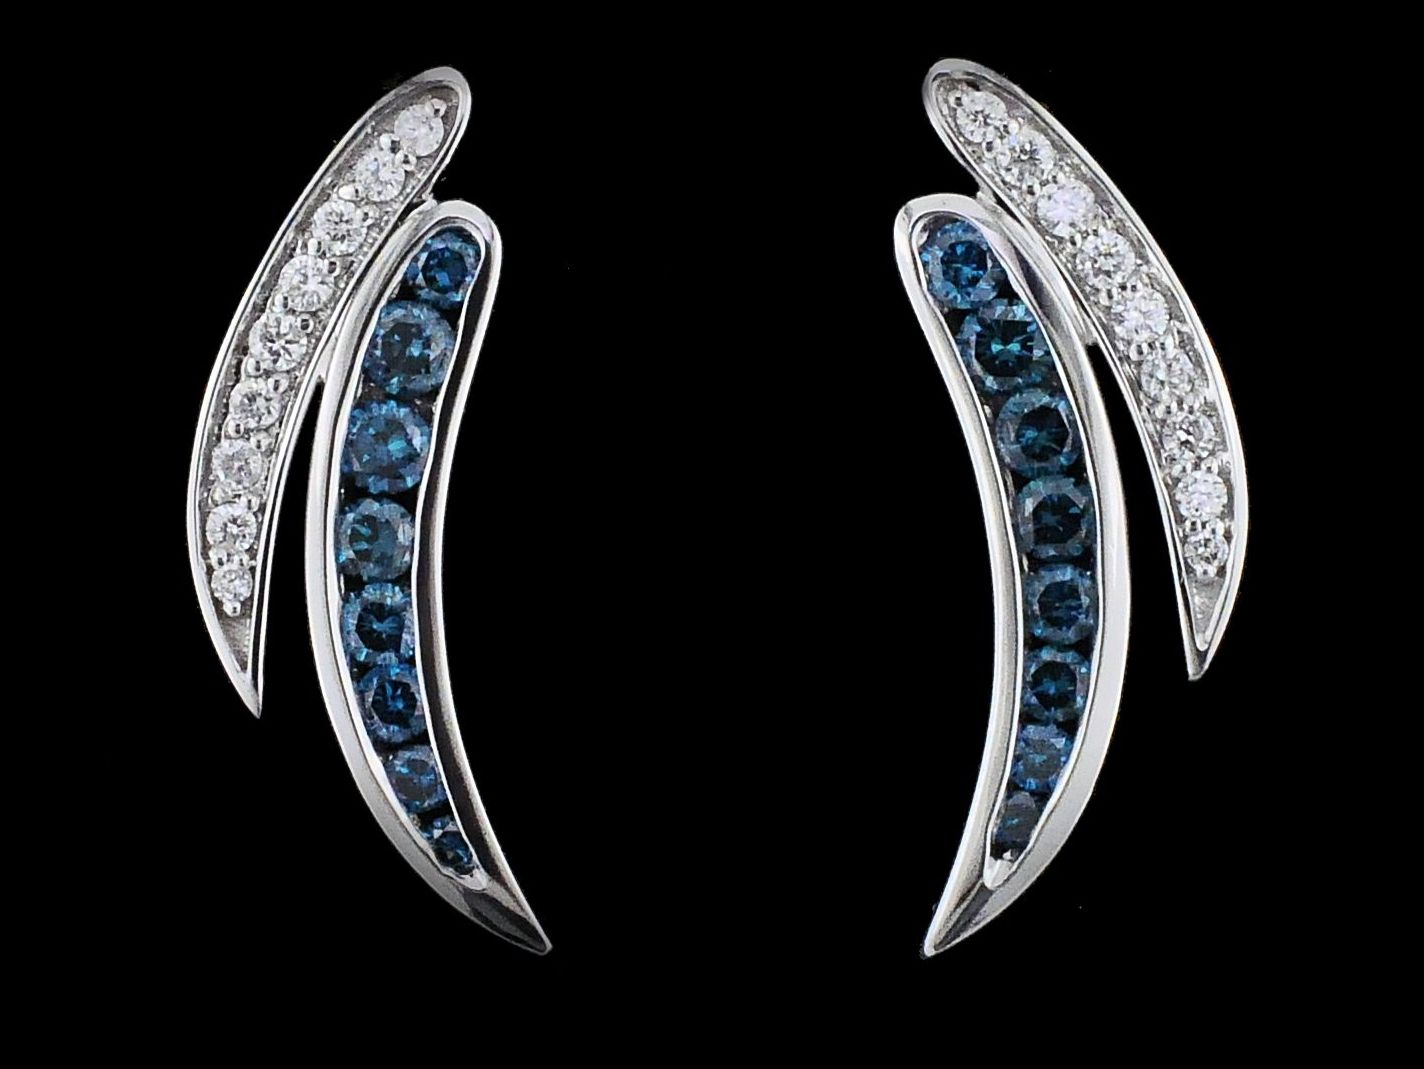 DeLeo Colored Diamond Earrings by DeLeo